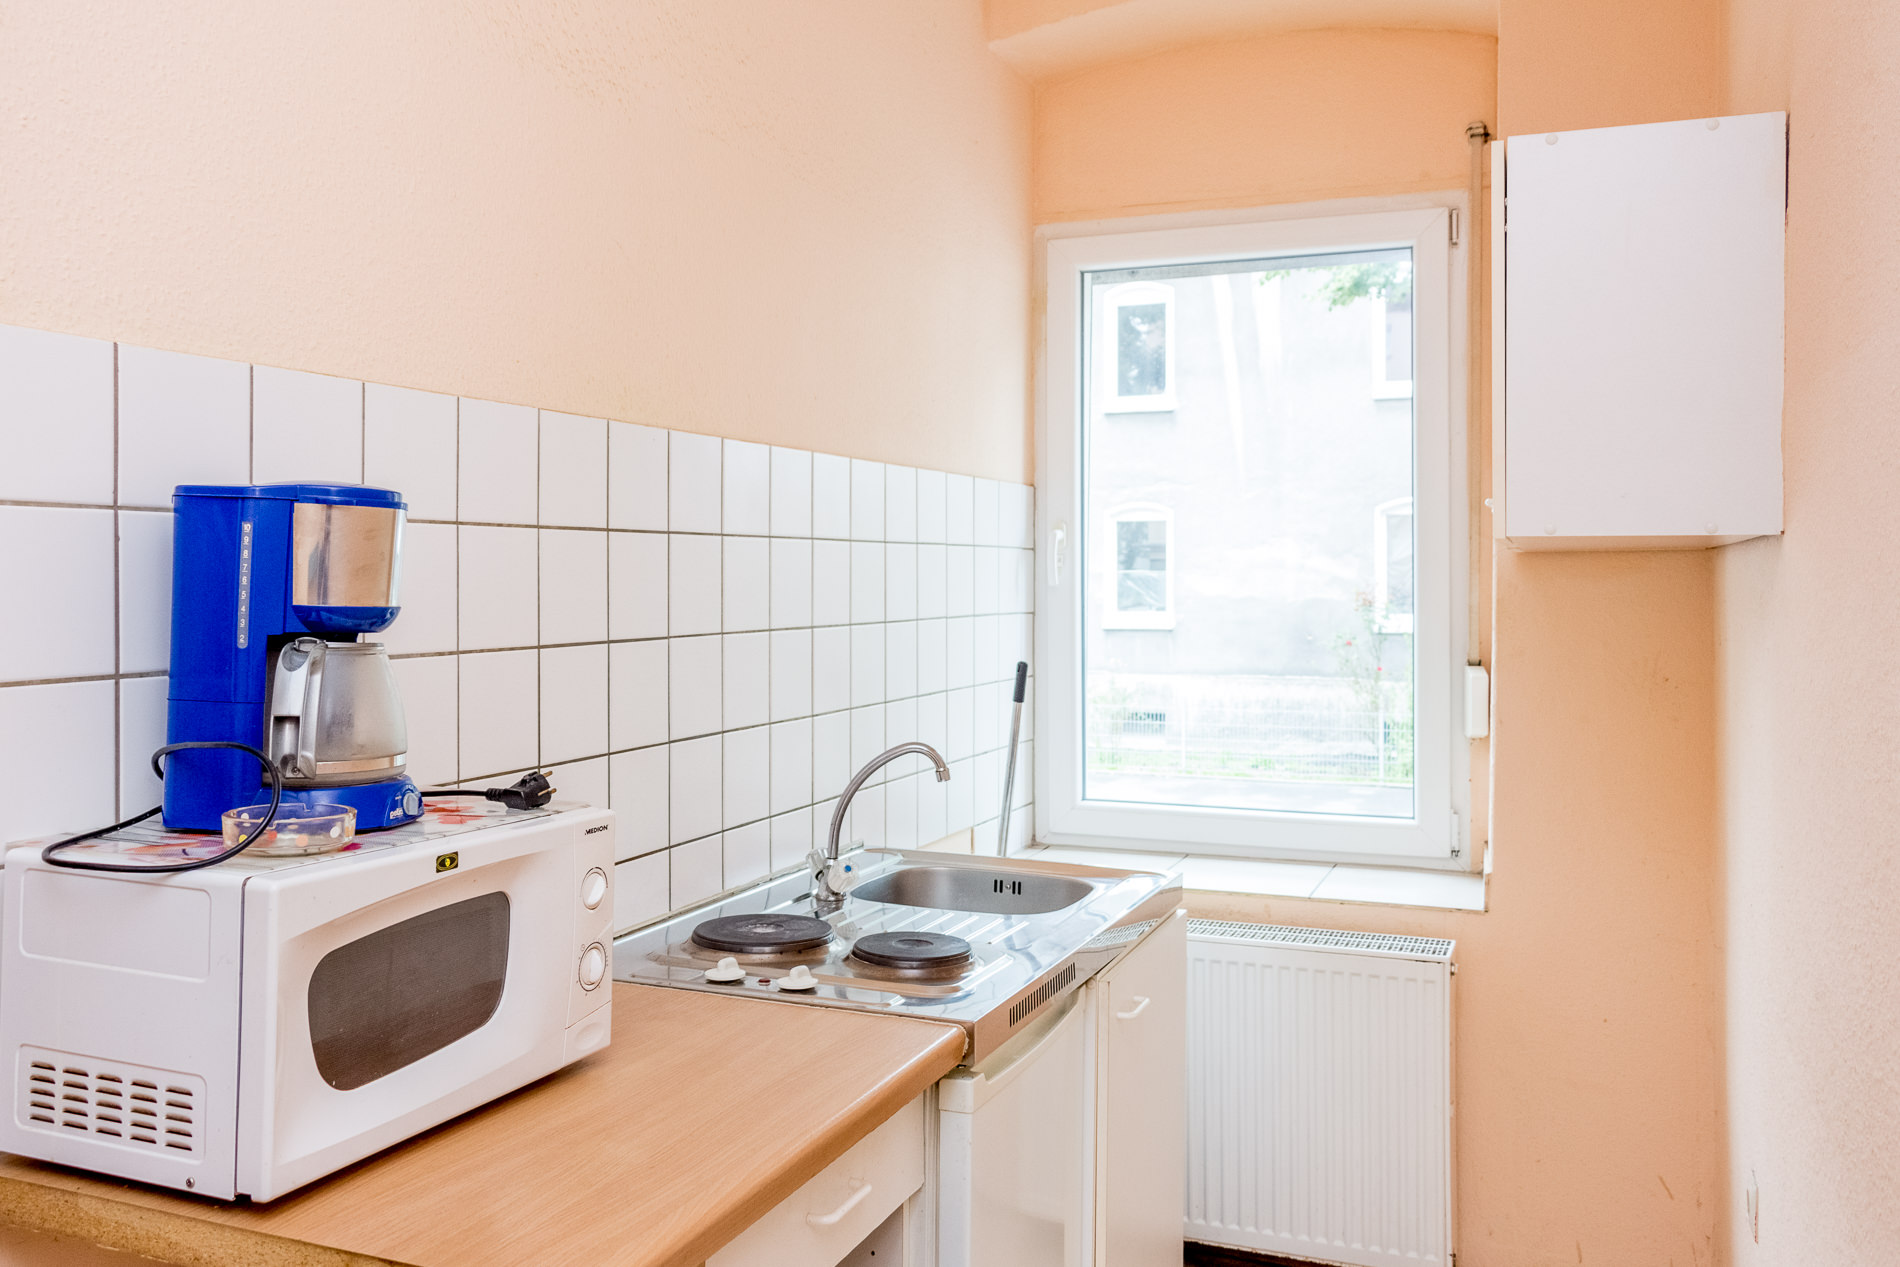 Kitchen fitter's room Dortmund Huckrade